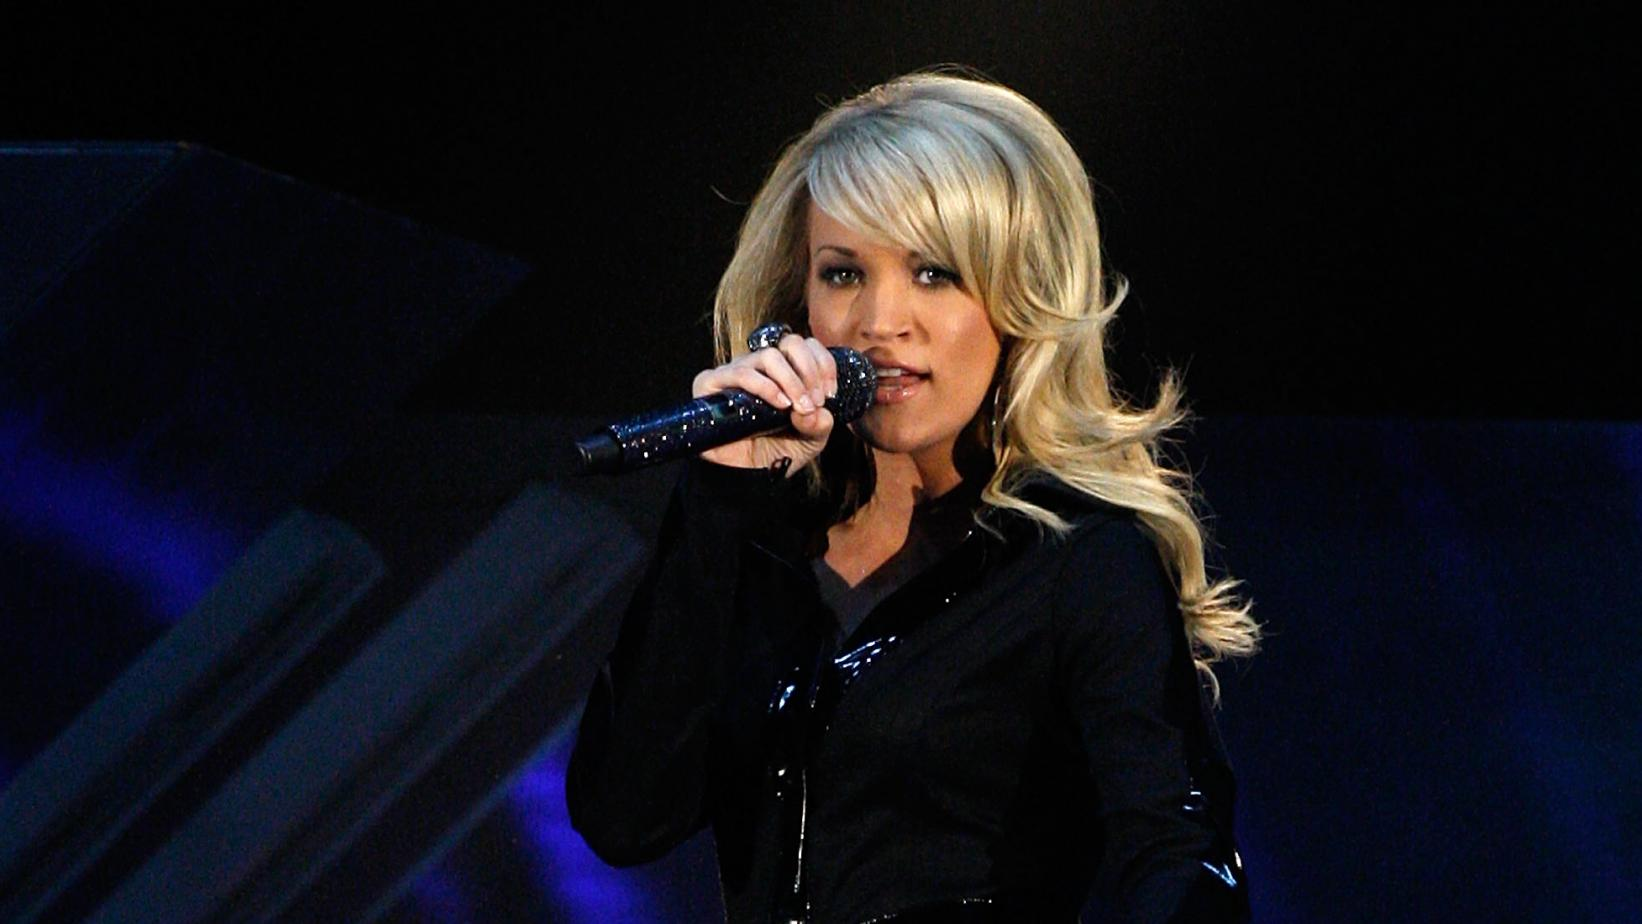 Carrie Underwood performs at the 2008 GRAMMYs